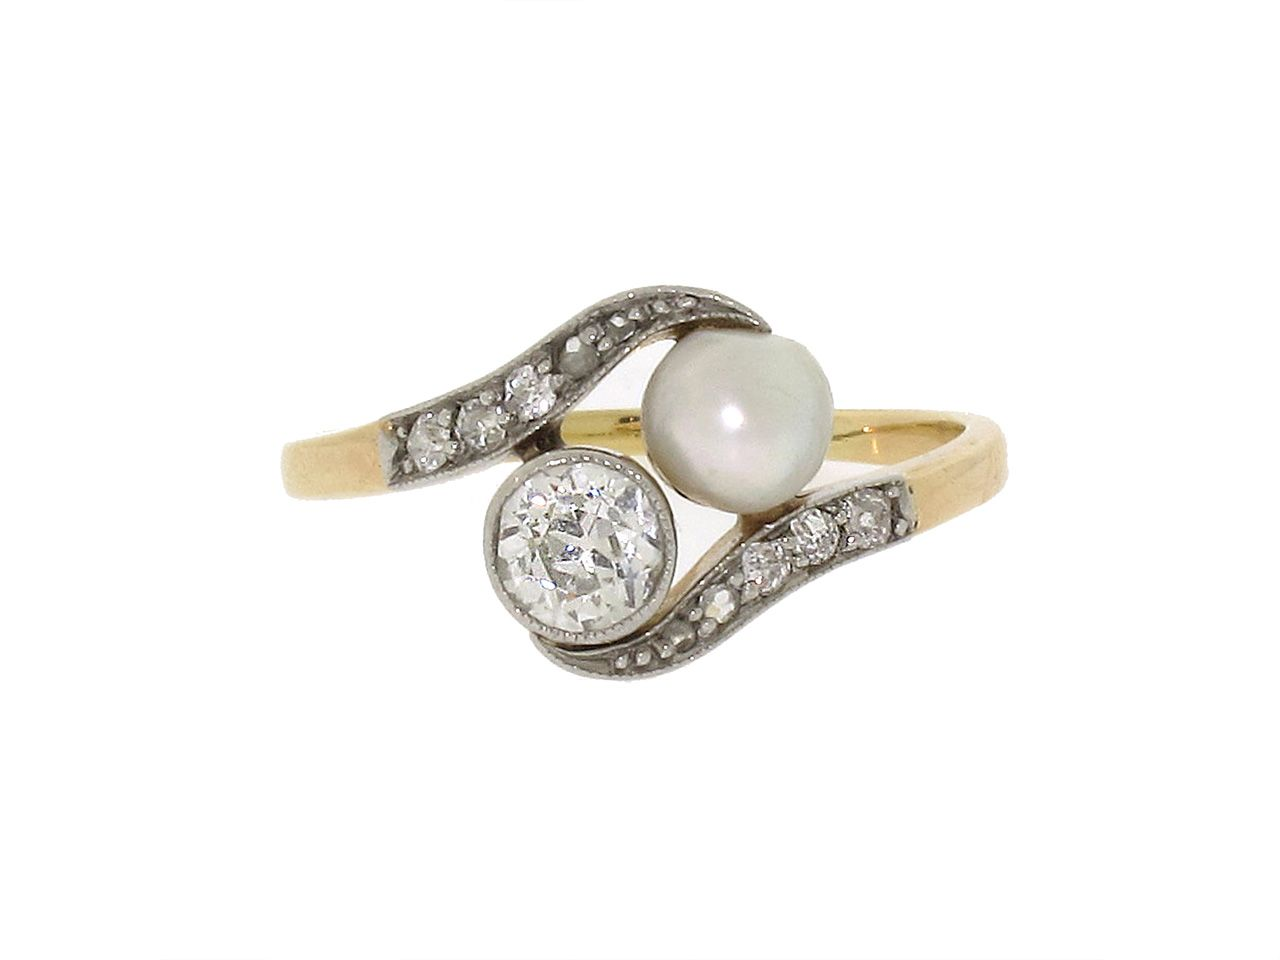 Antique Edwardian Natural Pearl And Diamond Ring In Platinum And Gold,  Circa 1905